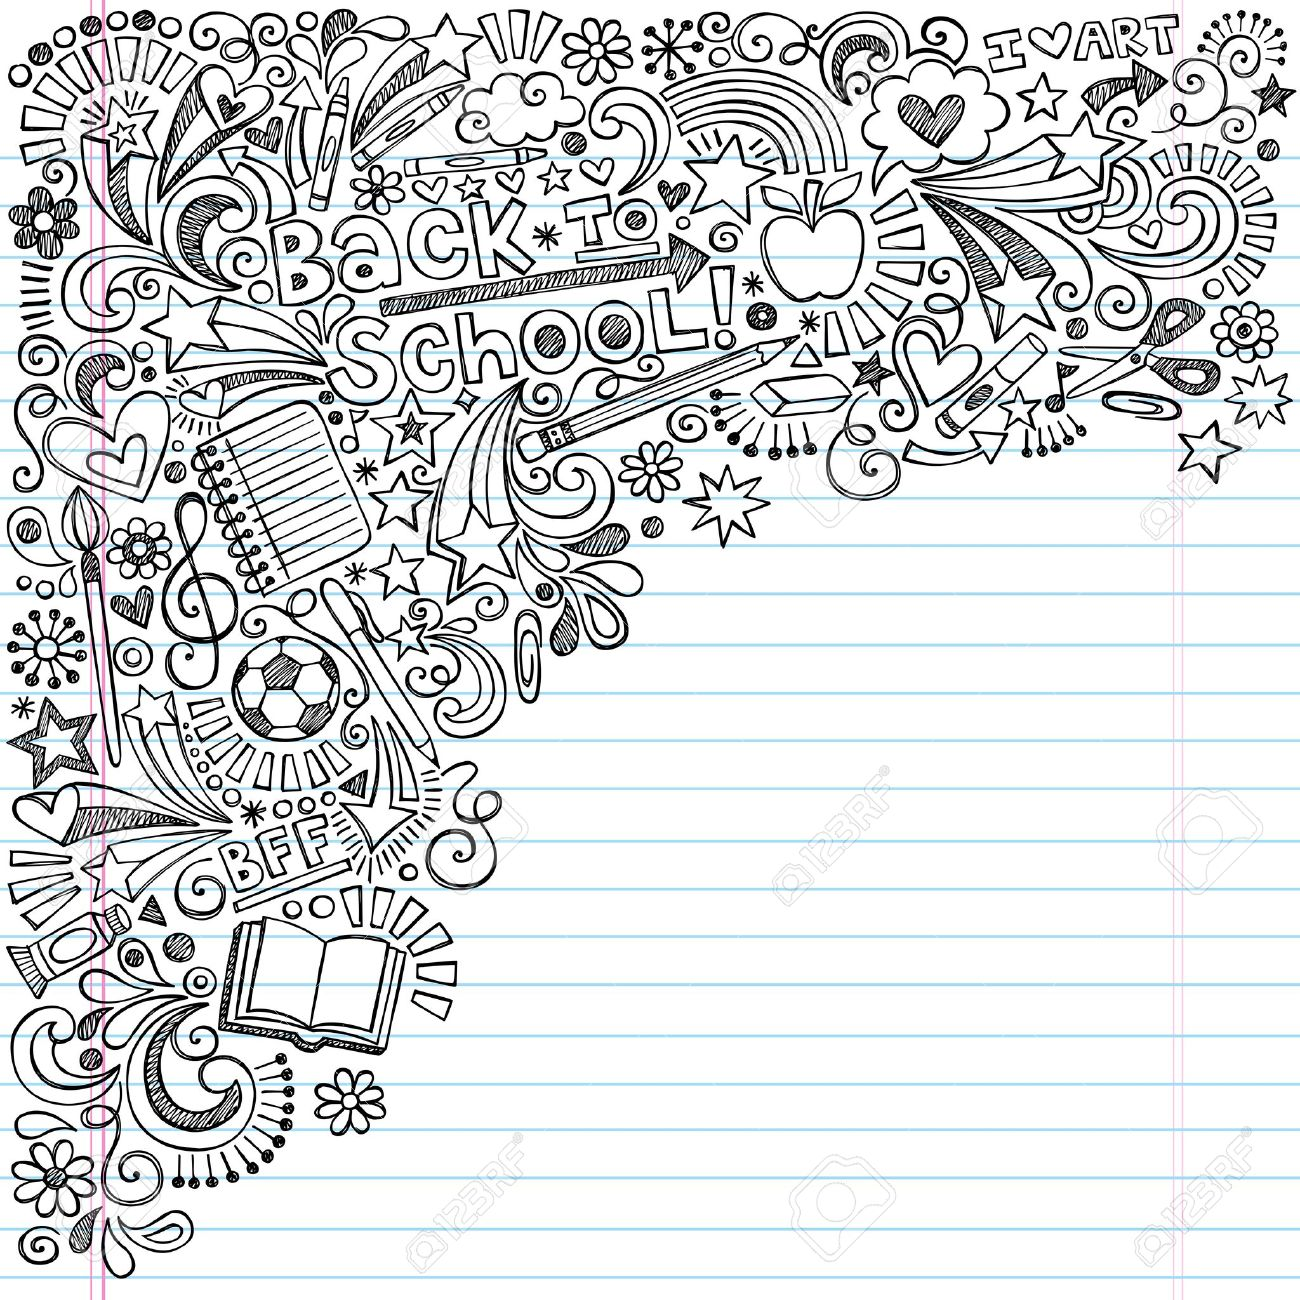 Inky Back to School Notebook Doodles with Apple, Soccer Ball, Art Supplies and Book- Hand-Drawn Vector Illustration Design Elements on Lined Sketchbook Paper Background Stock Vector - 22074880